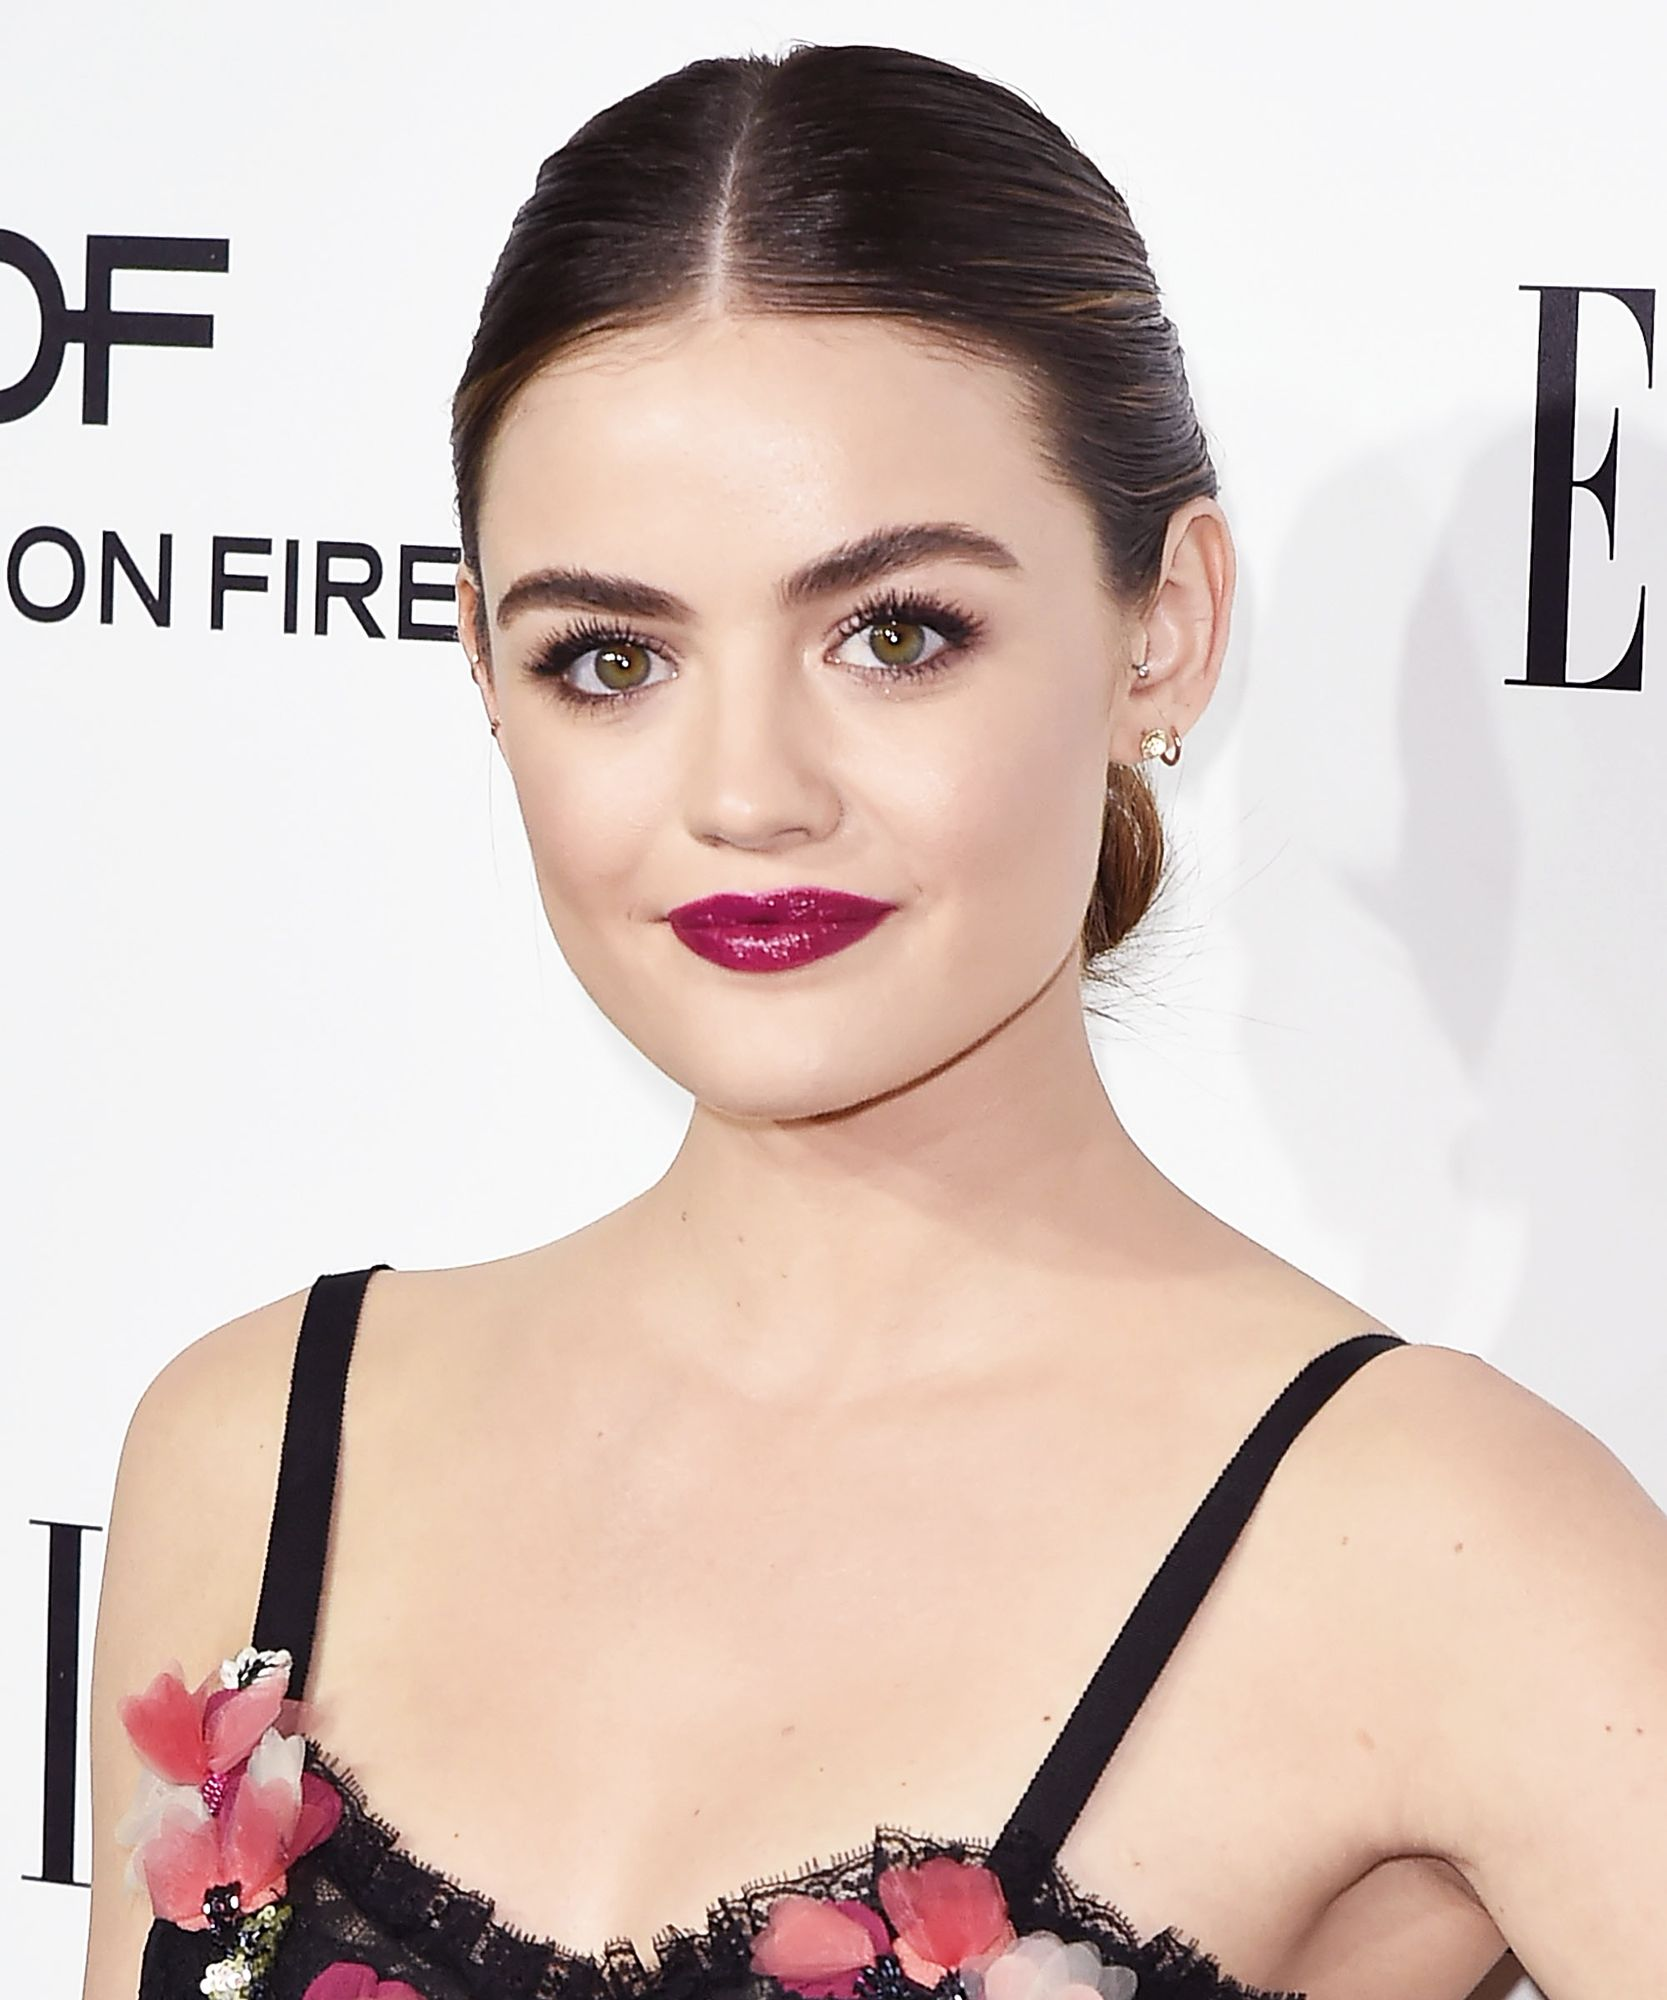 Lucy Hale's Koala Cuddle Session Will Cure Your Monday Woes